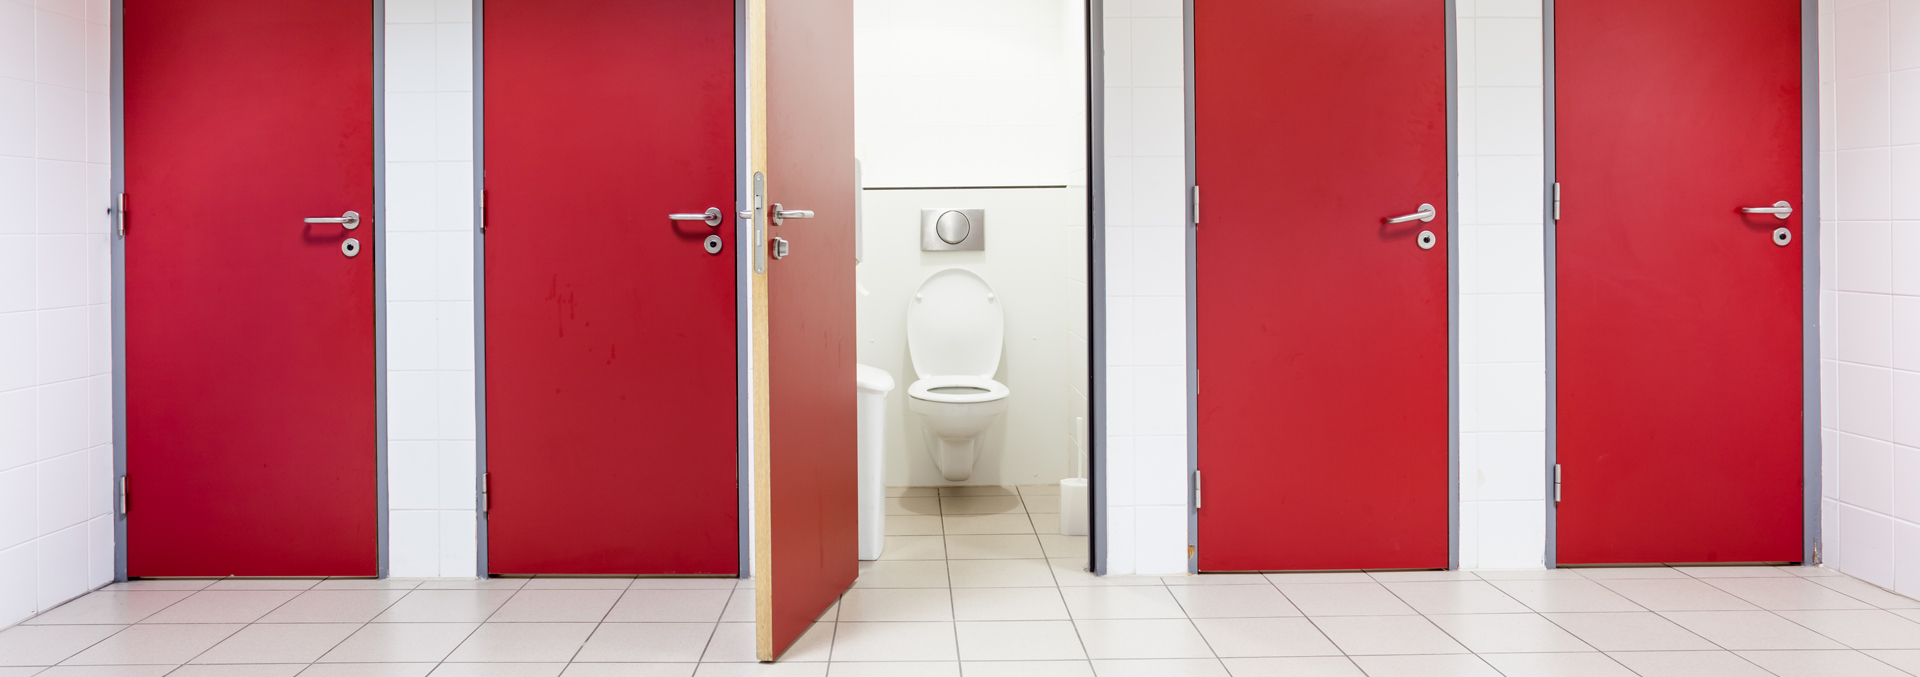 Tell your local MP that Canadians with Crohn's or colitis should have better washroom access